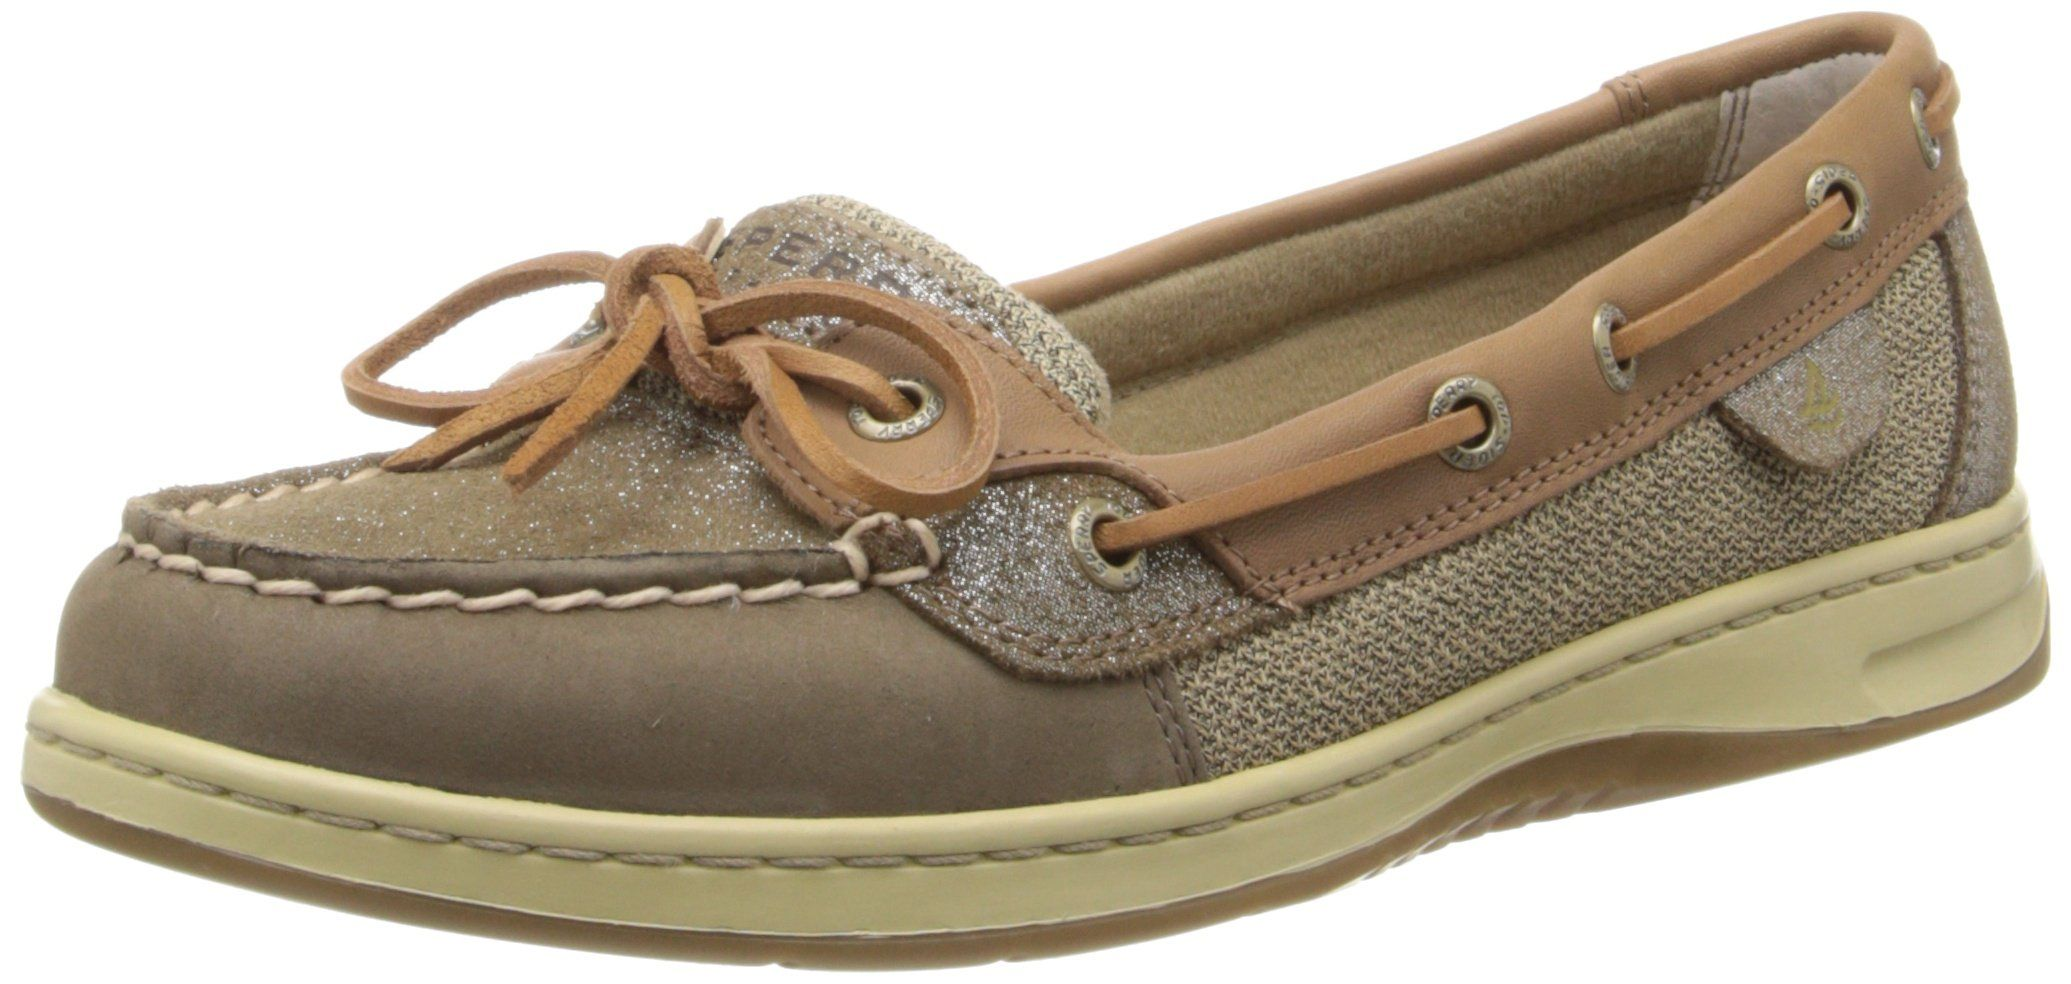 Sperry Top-Sider Women's Angelfish Sparkle Suede Boat Shoe, Griege/Light Tan, 9 M US